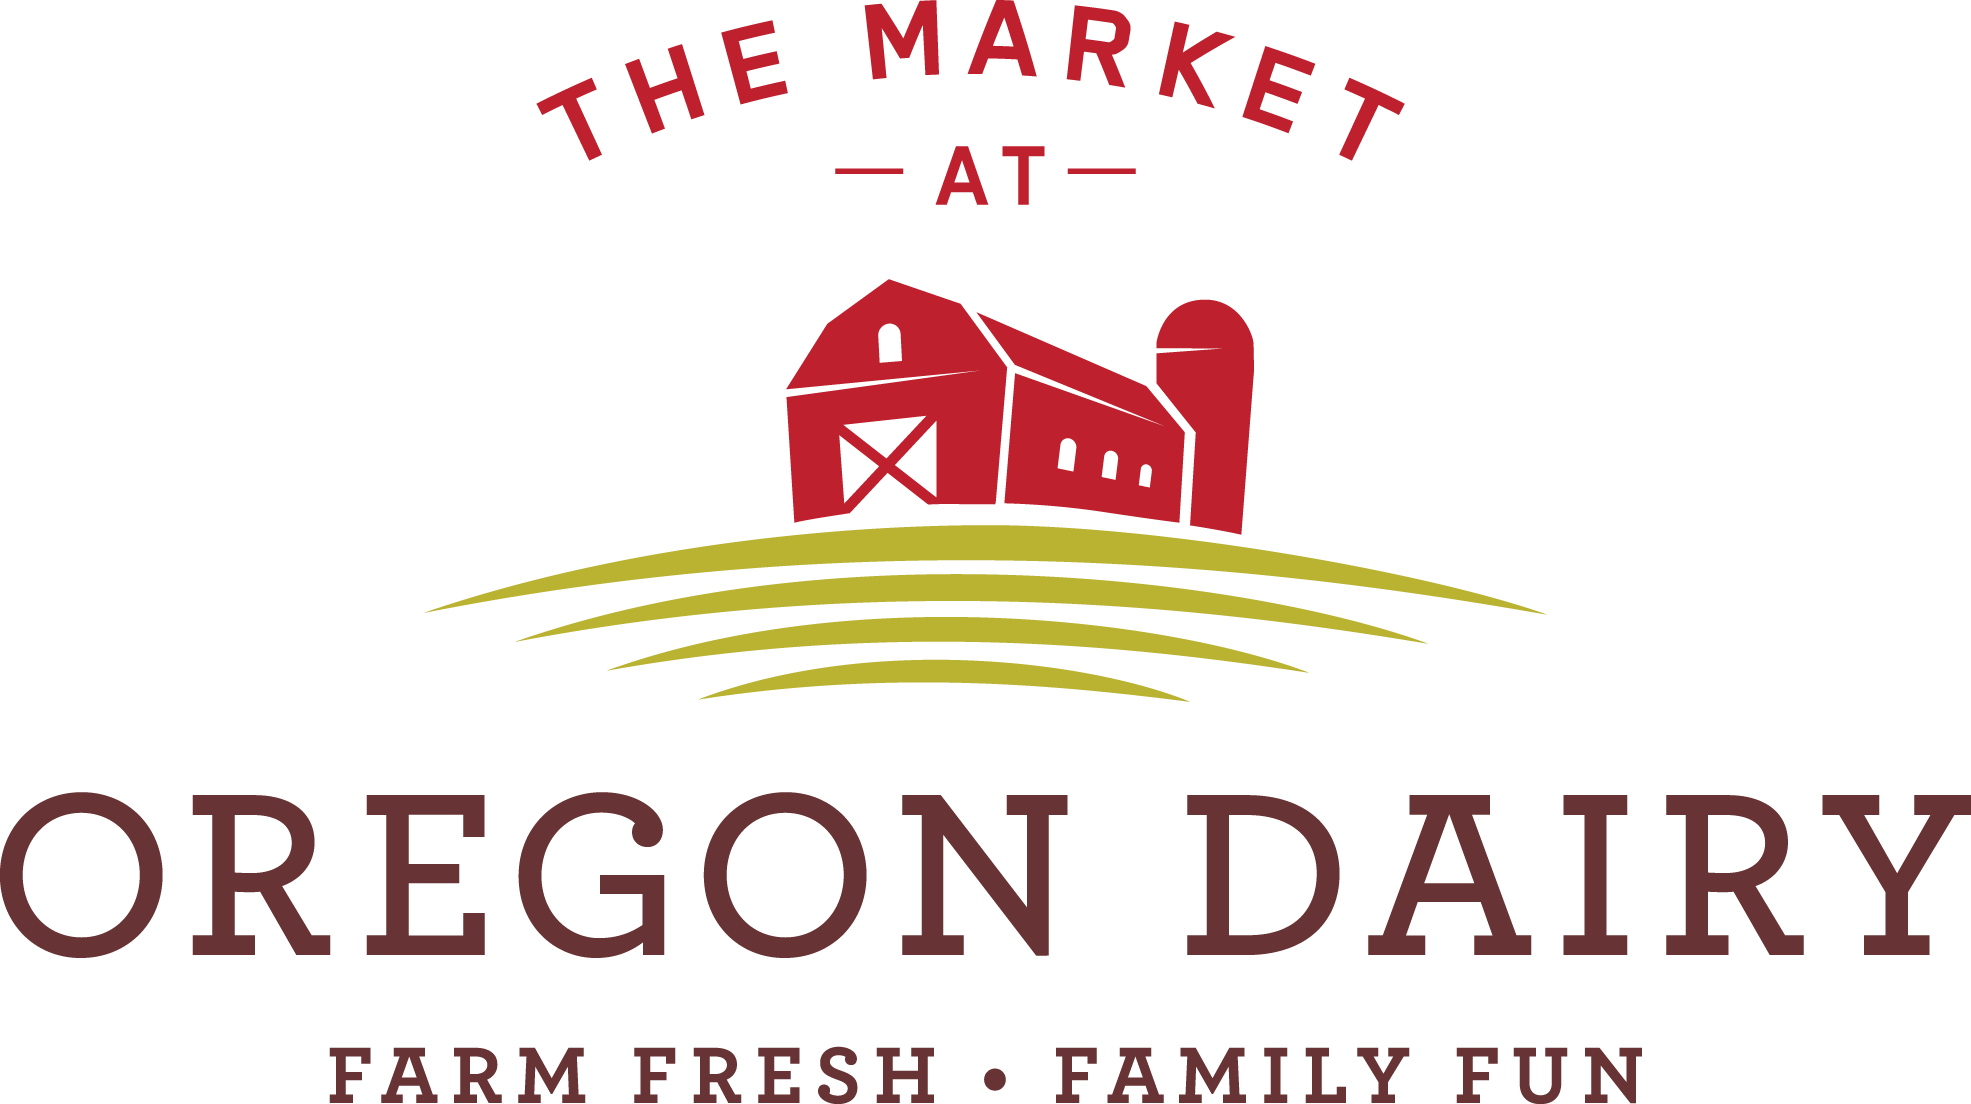 The Market at Oregon Dairy Online Grocery Shopping